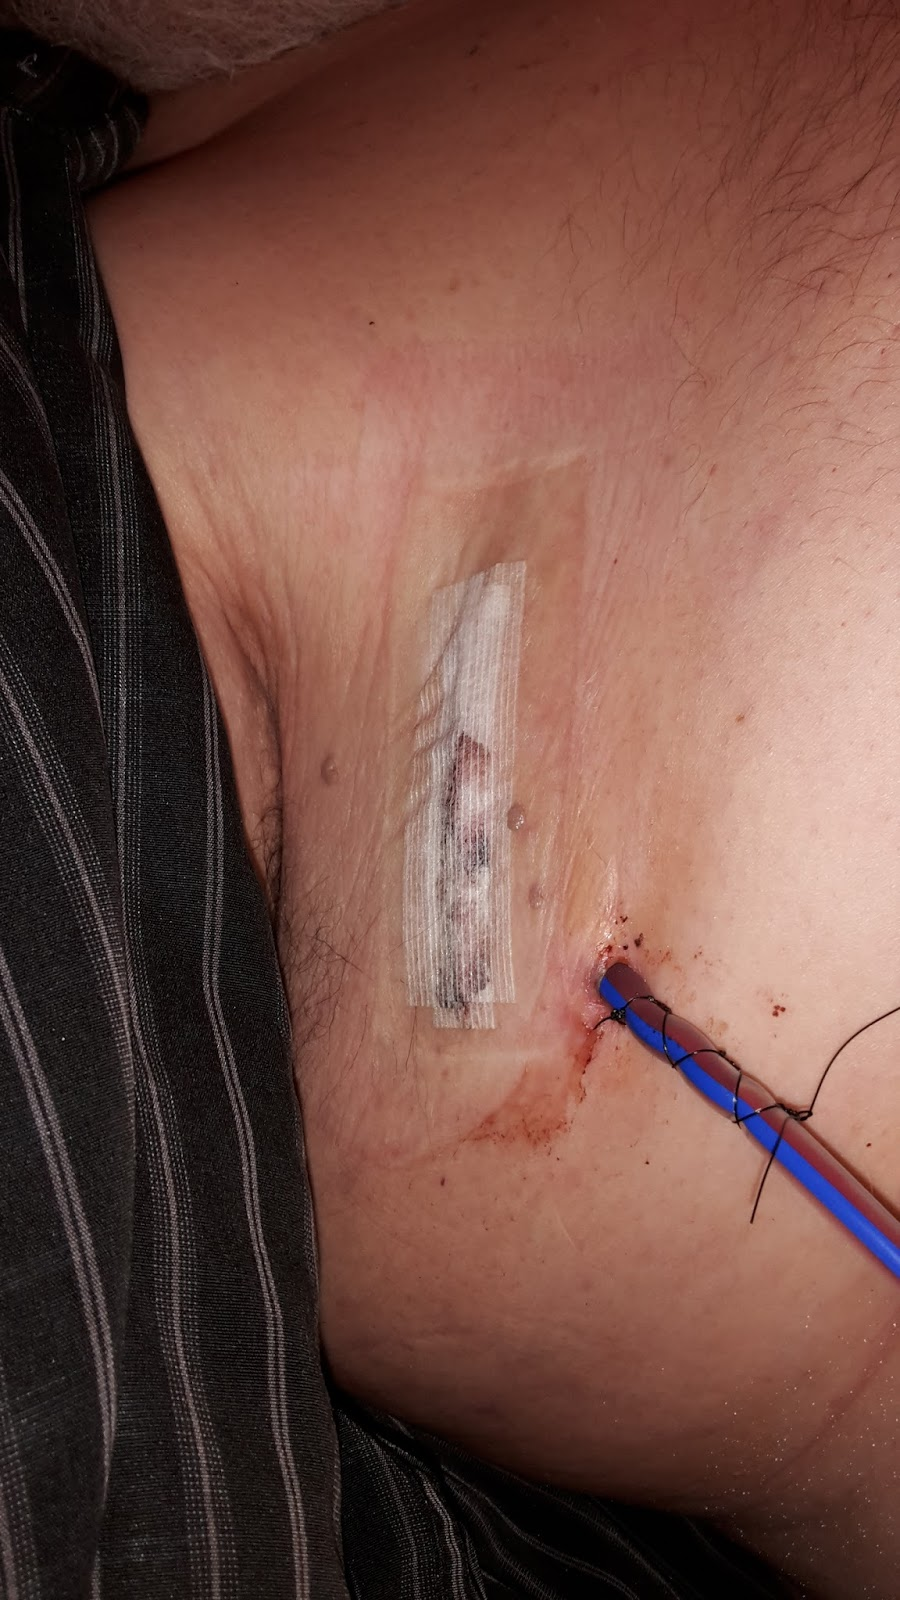 Merkel Cell Carcinoma On The Bayou Beginning The Treatment For Mcc